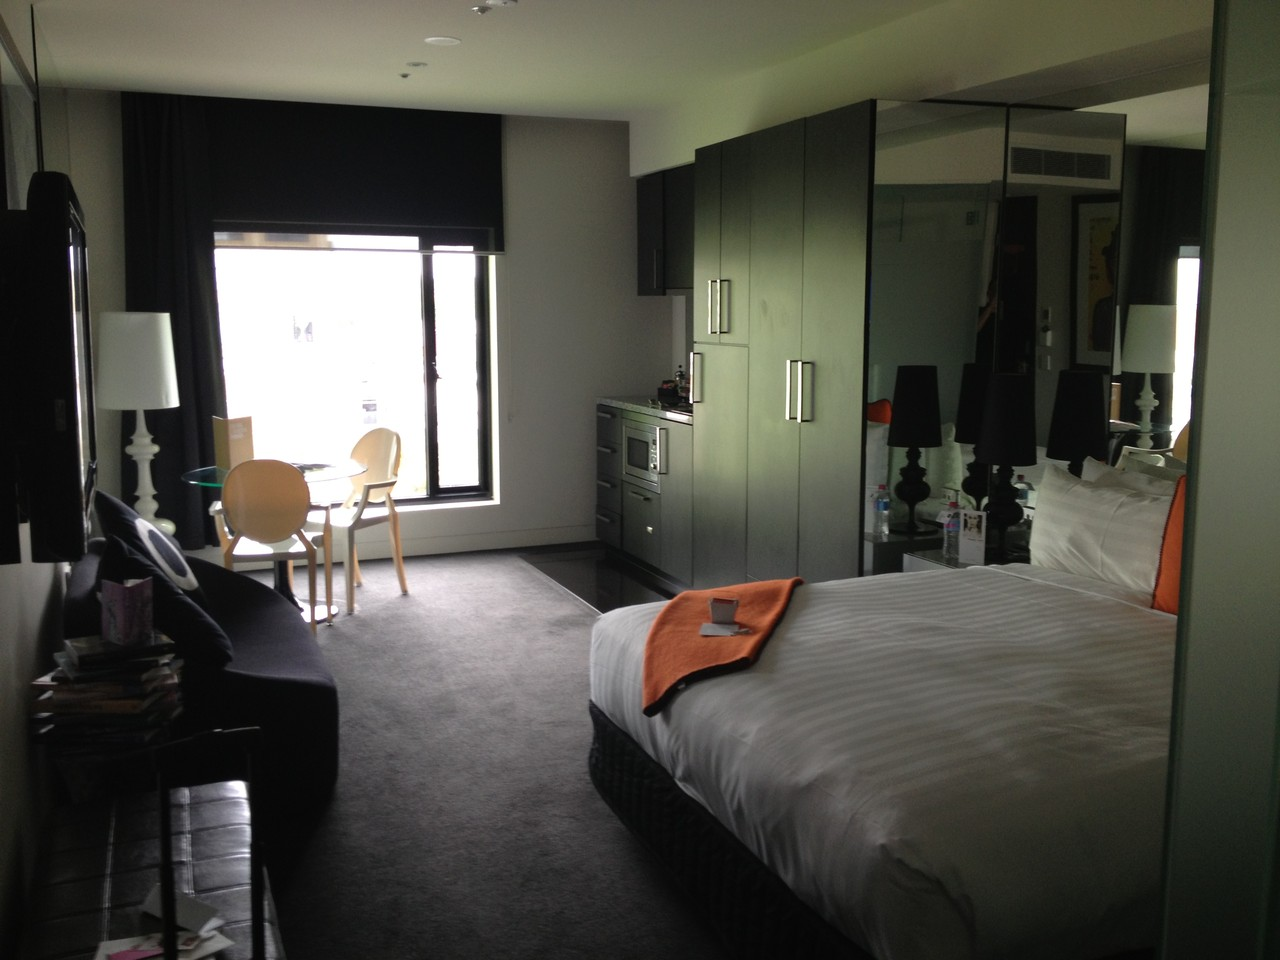 Hotel room ... bliss! But it's 9 in the morning and I musn't sleep much. — at Melbourne Australia.